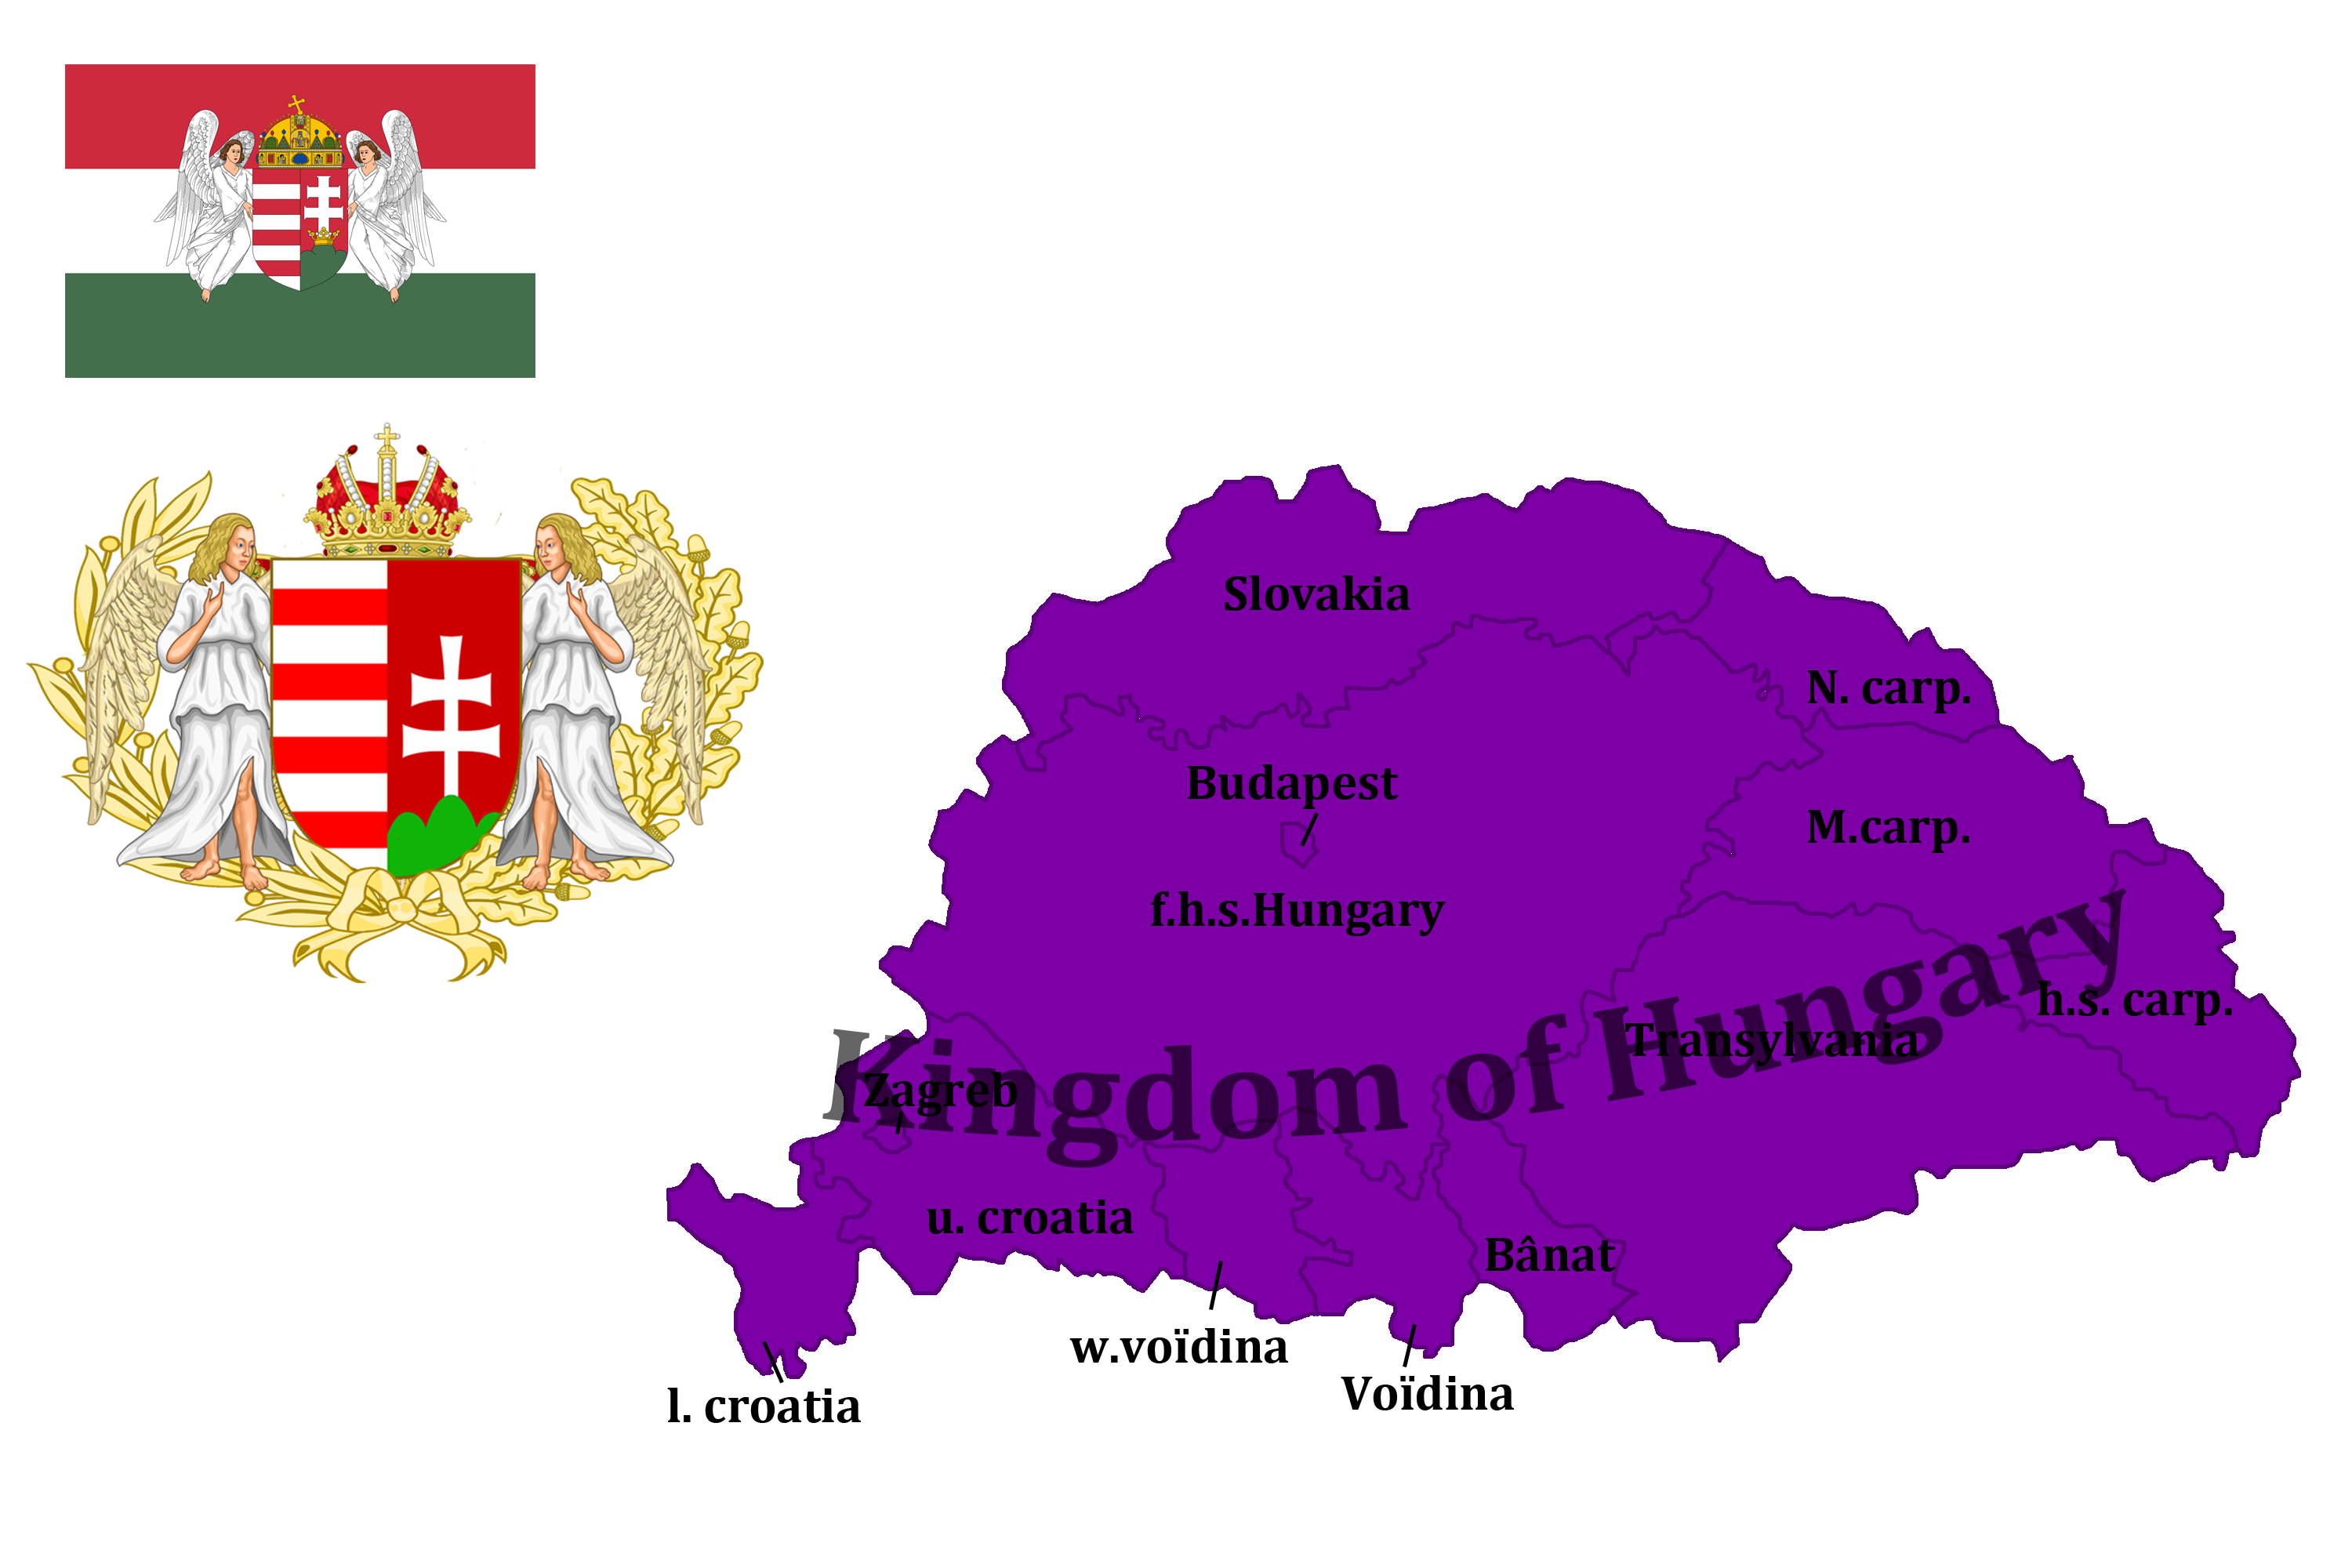 Kingdom of Hungary (mapping) by DimLordofFox